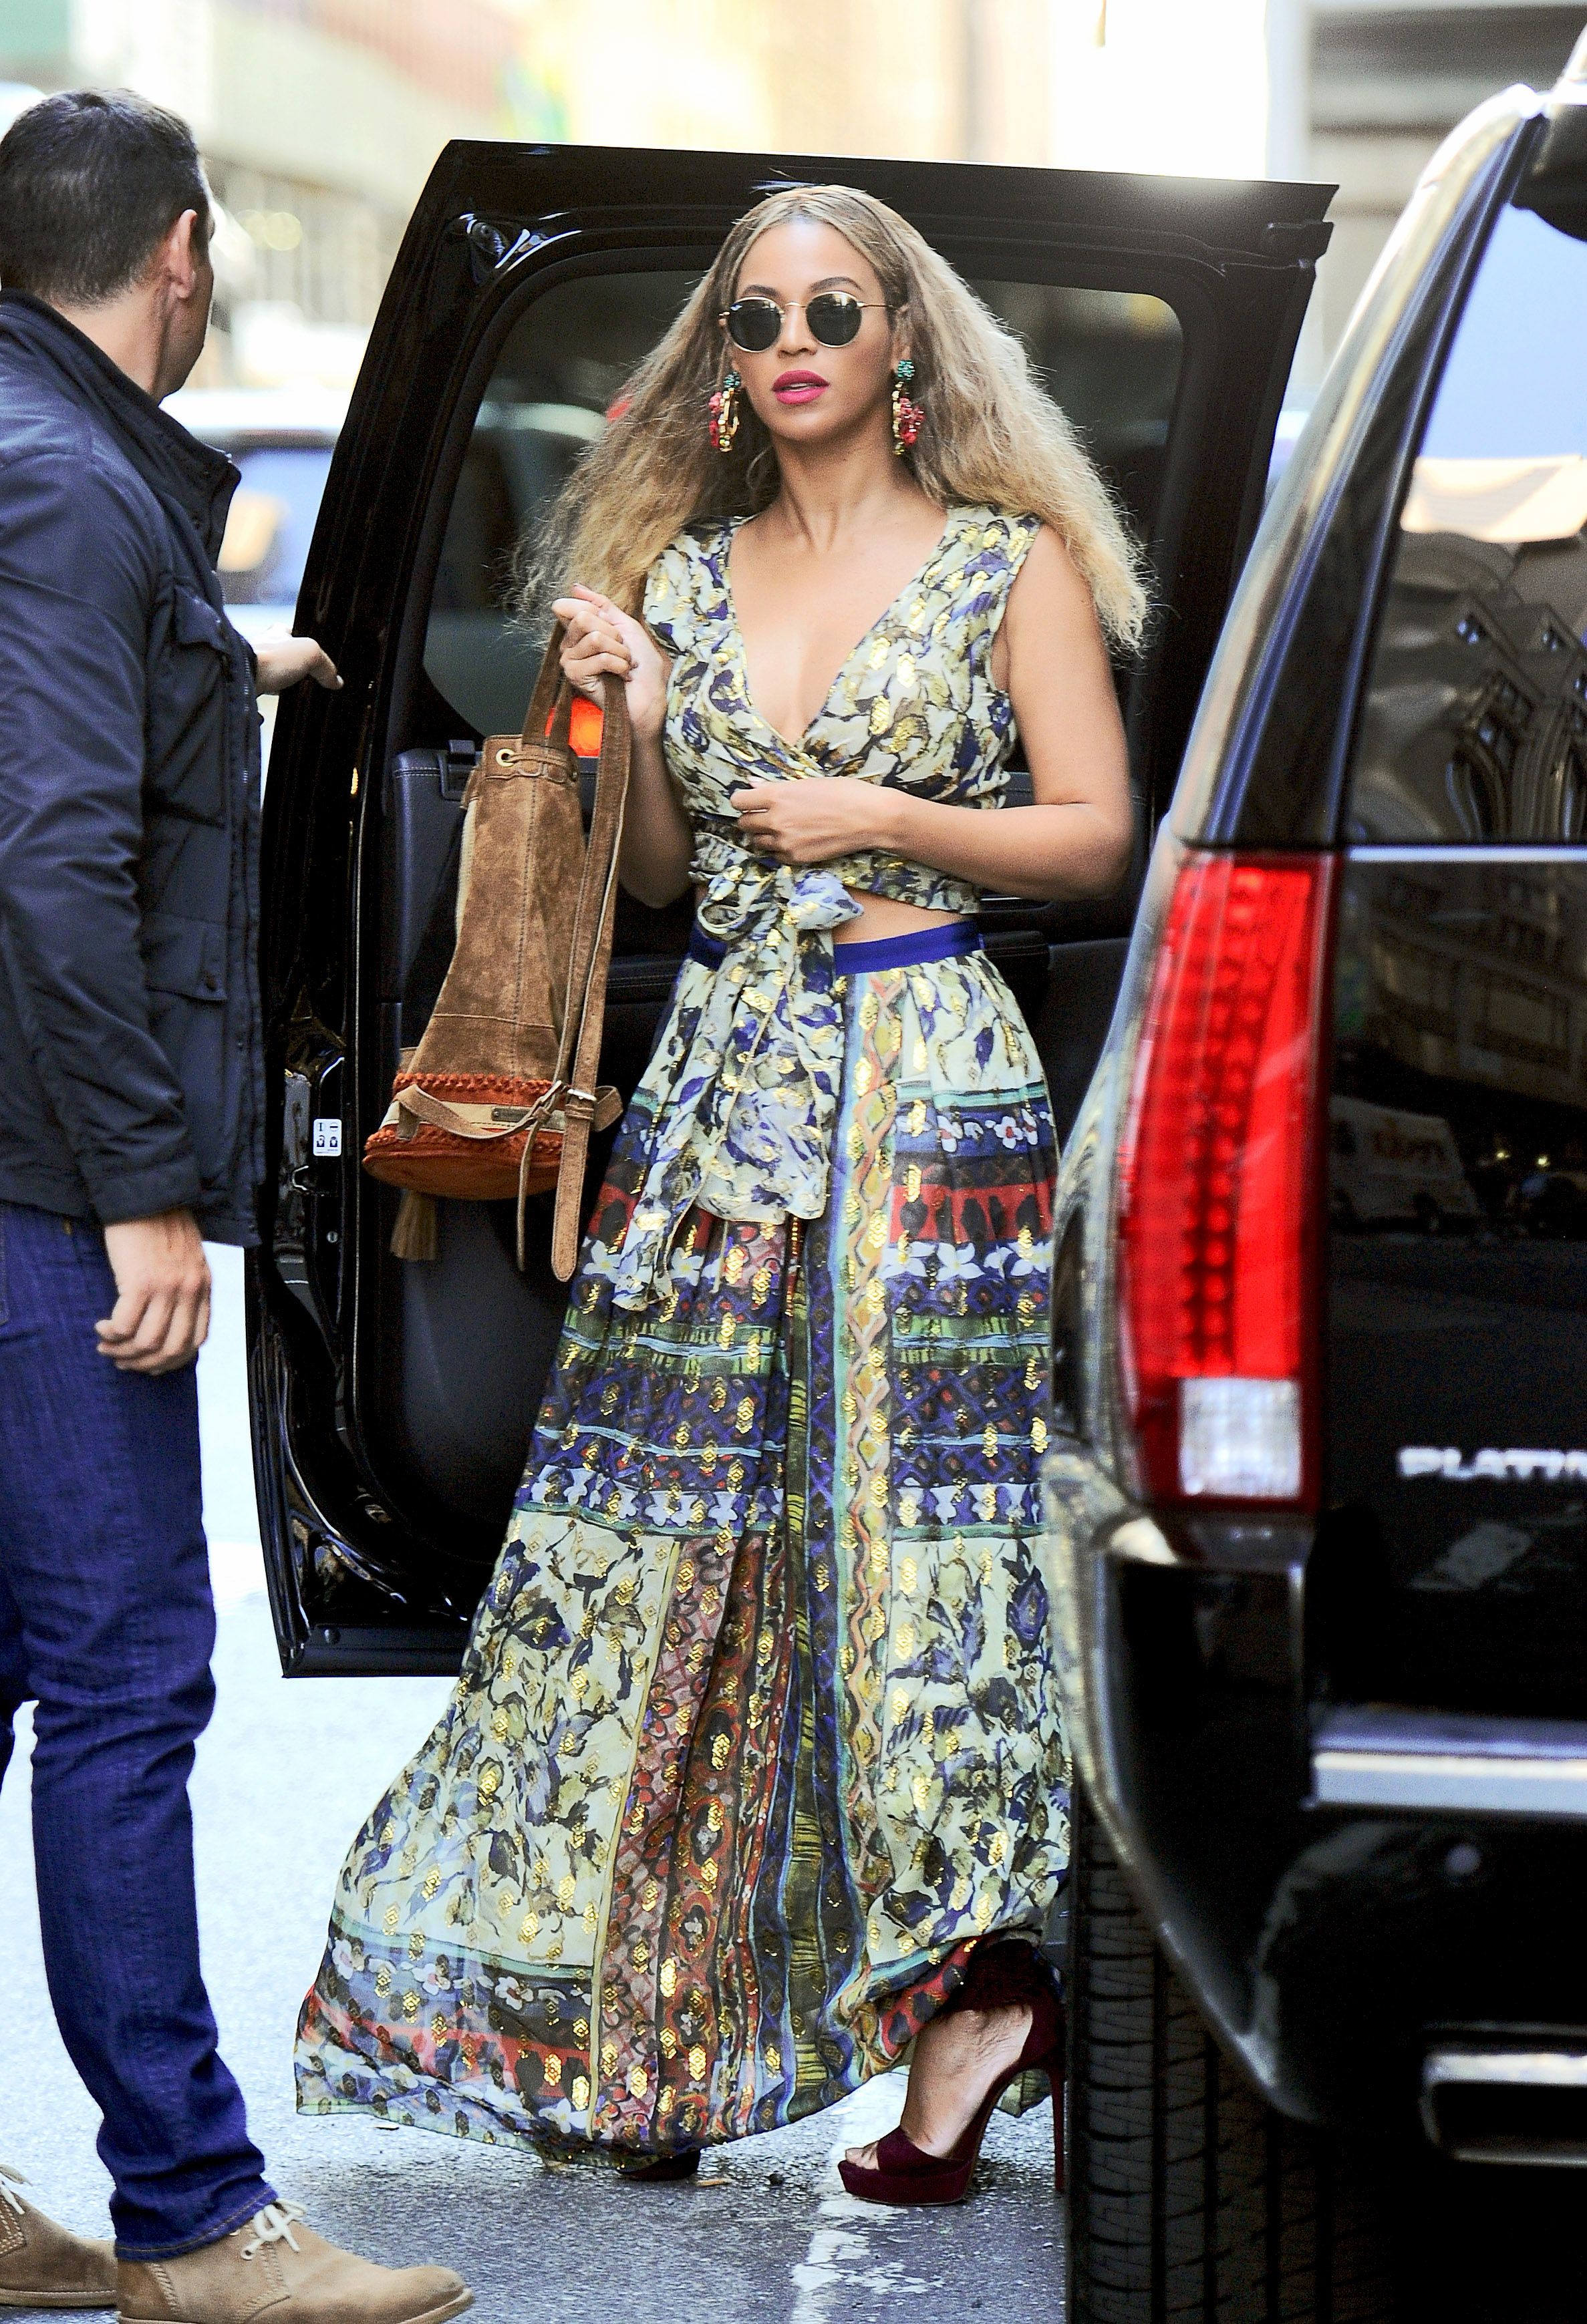 Beyonce looks stunning wearing a floral gown as she heads to her office in NYC